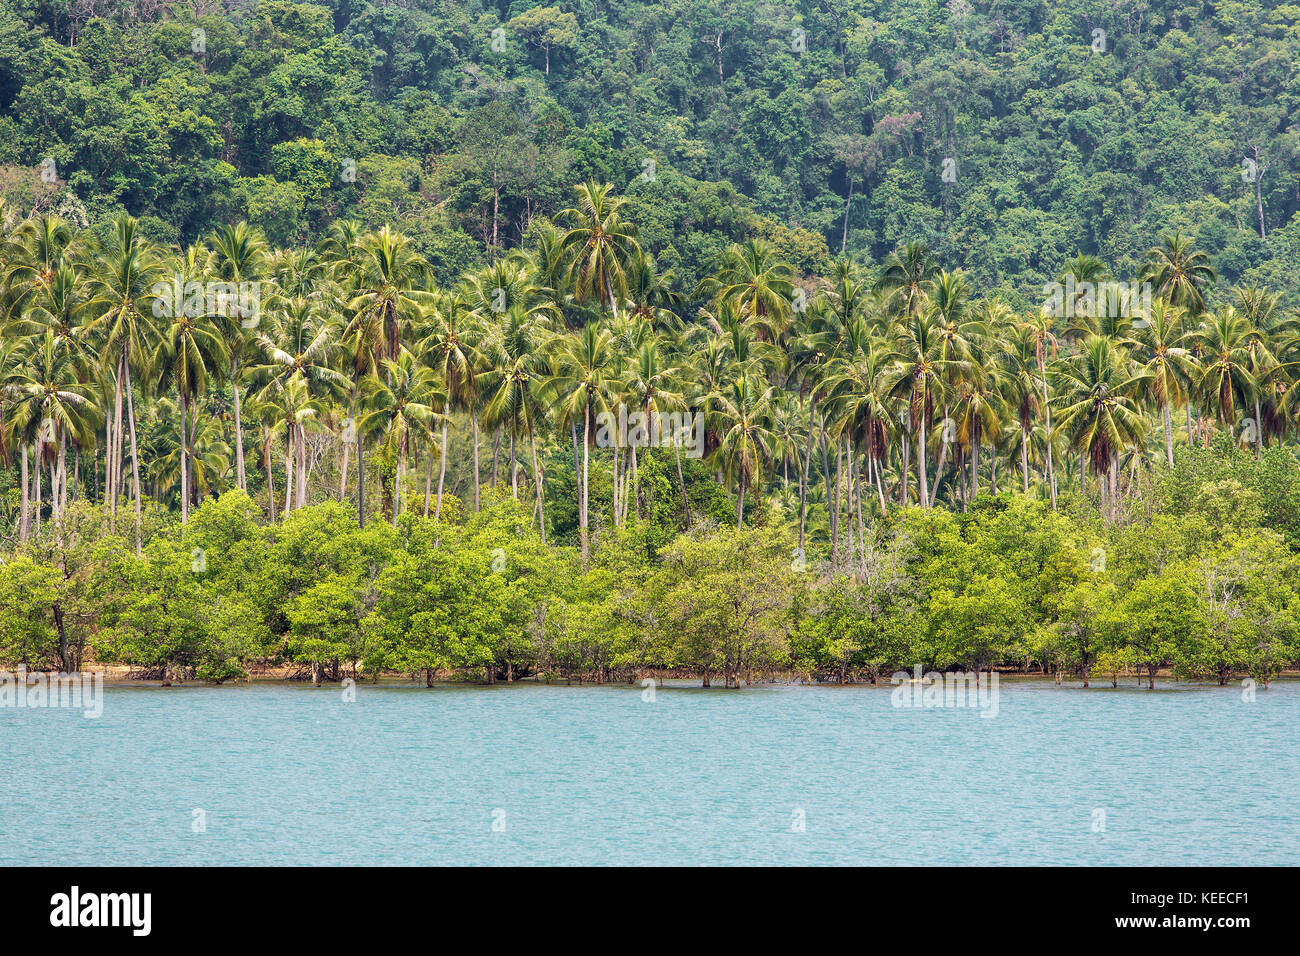 Tropical bay landscape with a palm trees in Thailand - Stock Image